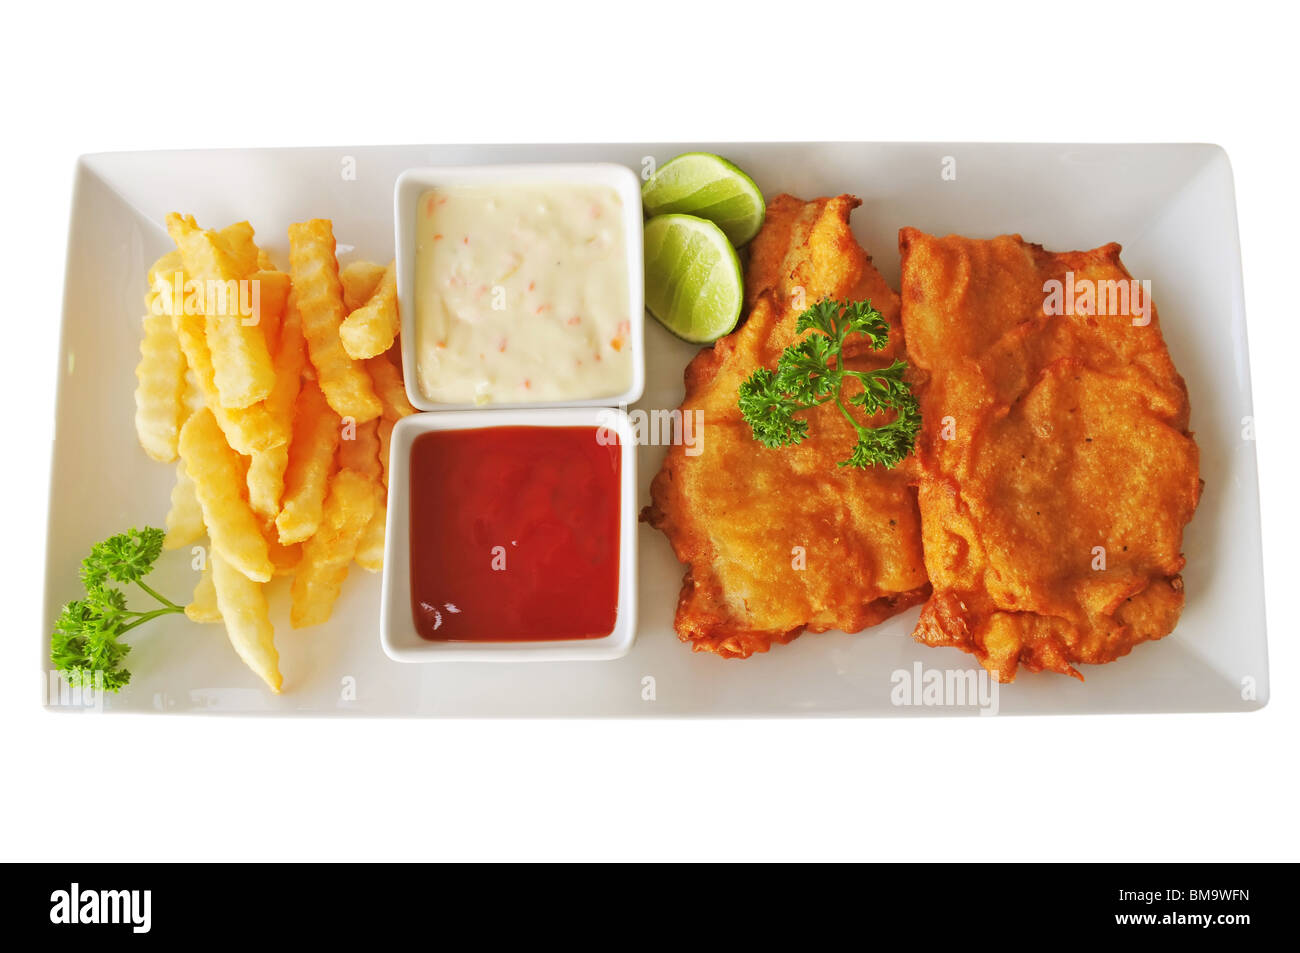 Fried fish and chips over white background - Stock Image